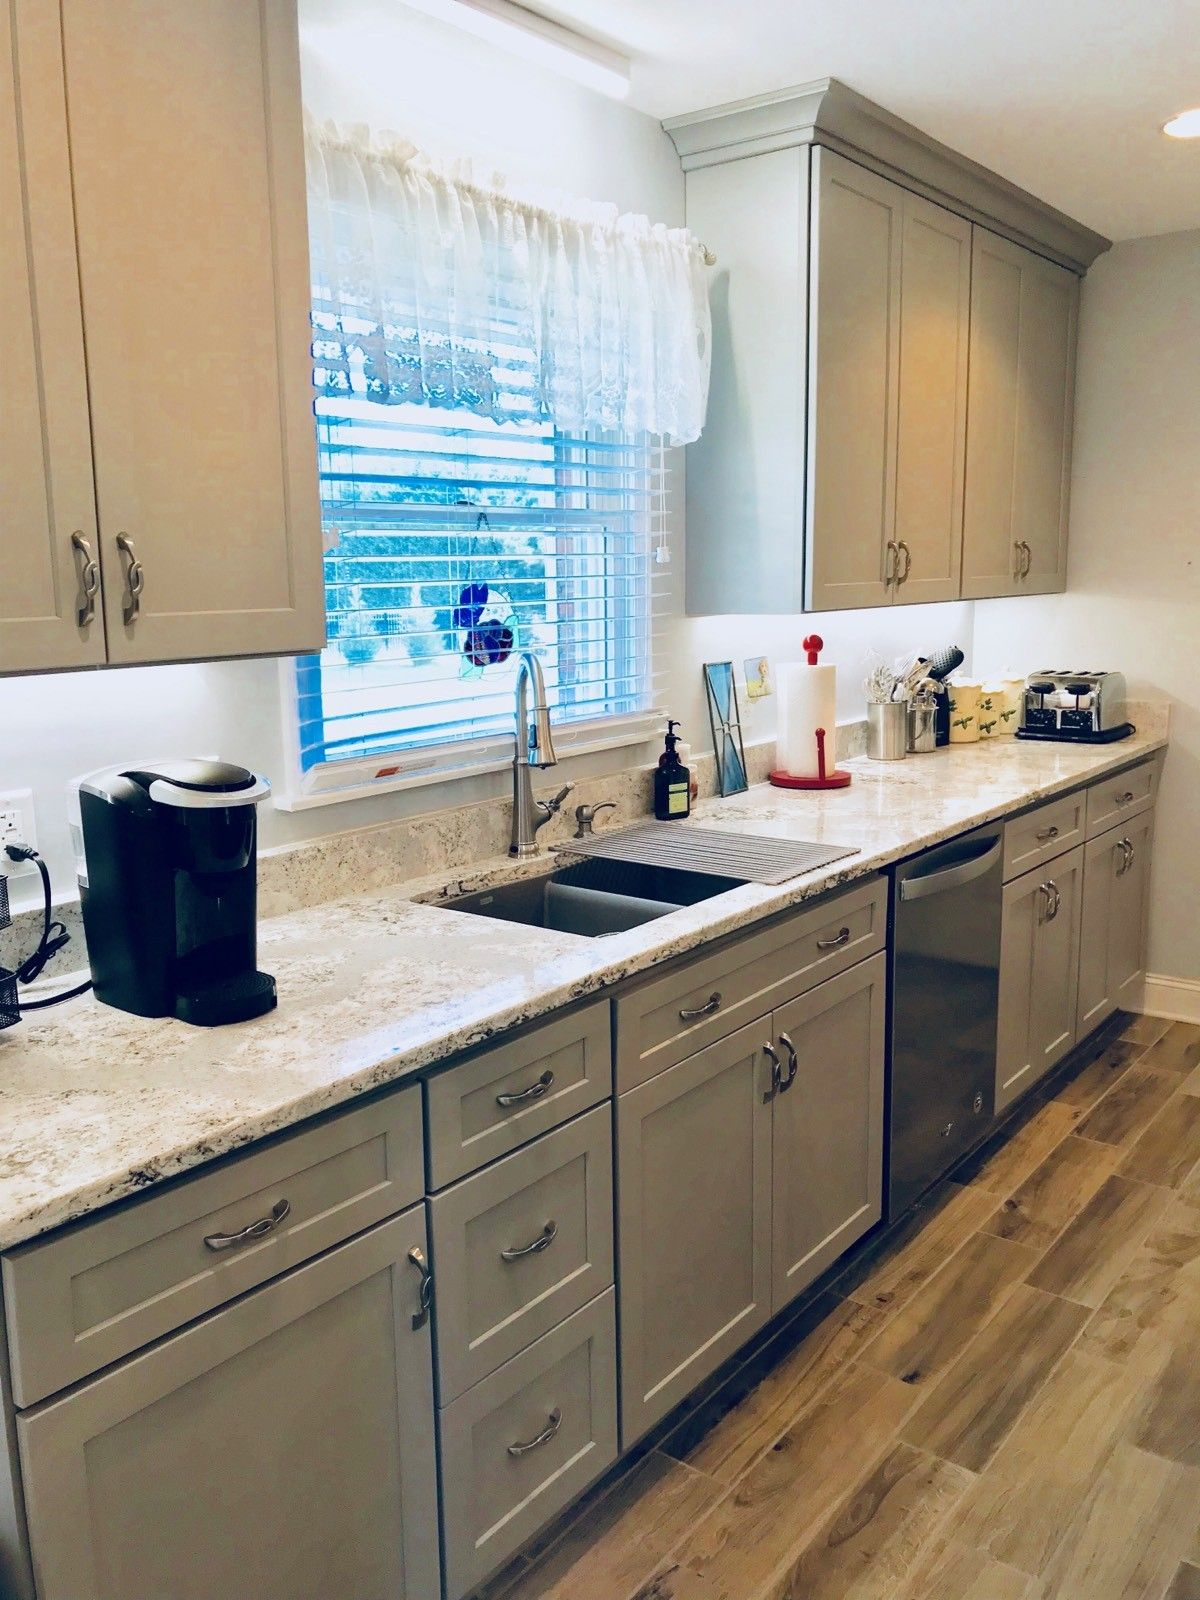 Homecrest Sedona Maple Willow Paint Perimeter And Kith Creekstone Gray Paint Island Cabinets Ge Profile Stainless Appl Grey Kitchen Cabinets Kitchen Kitchen S